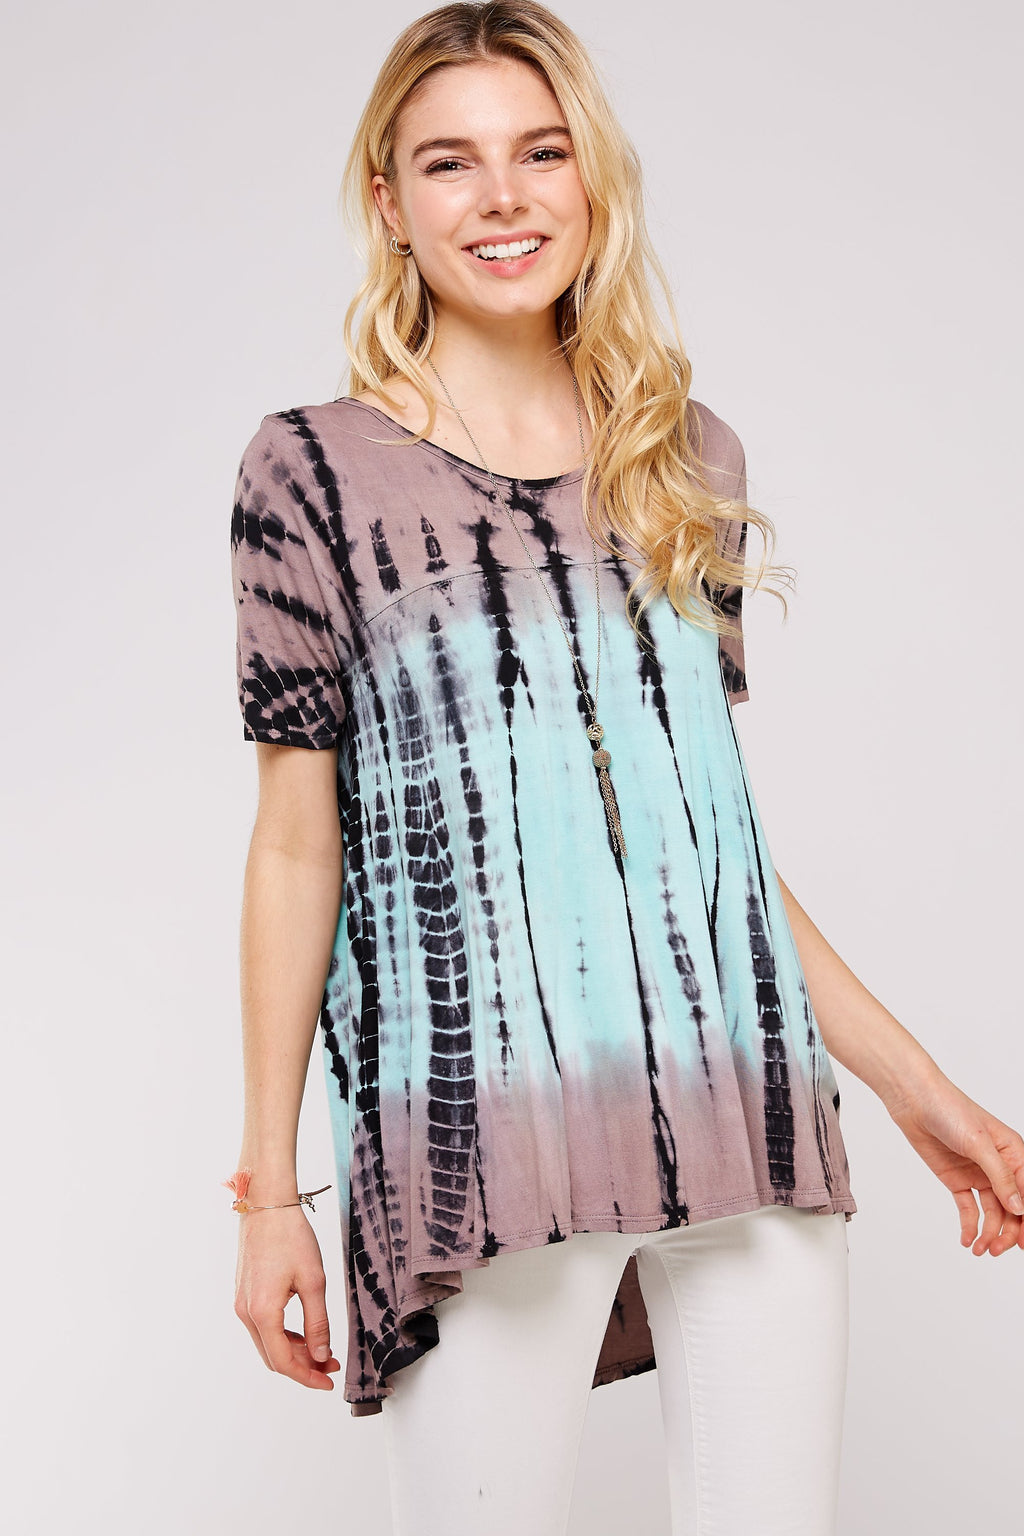 Wholesale Clothing, Online Wholesale Clothing, Women Clothing, Bohemian, Free People, tiedye, specialty wash, wholesale seller, wholesale women clothing shop, gypsy look, USA made, URBAN X APPAREL-TIE DYE-UTR5221, fashiontrend2019